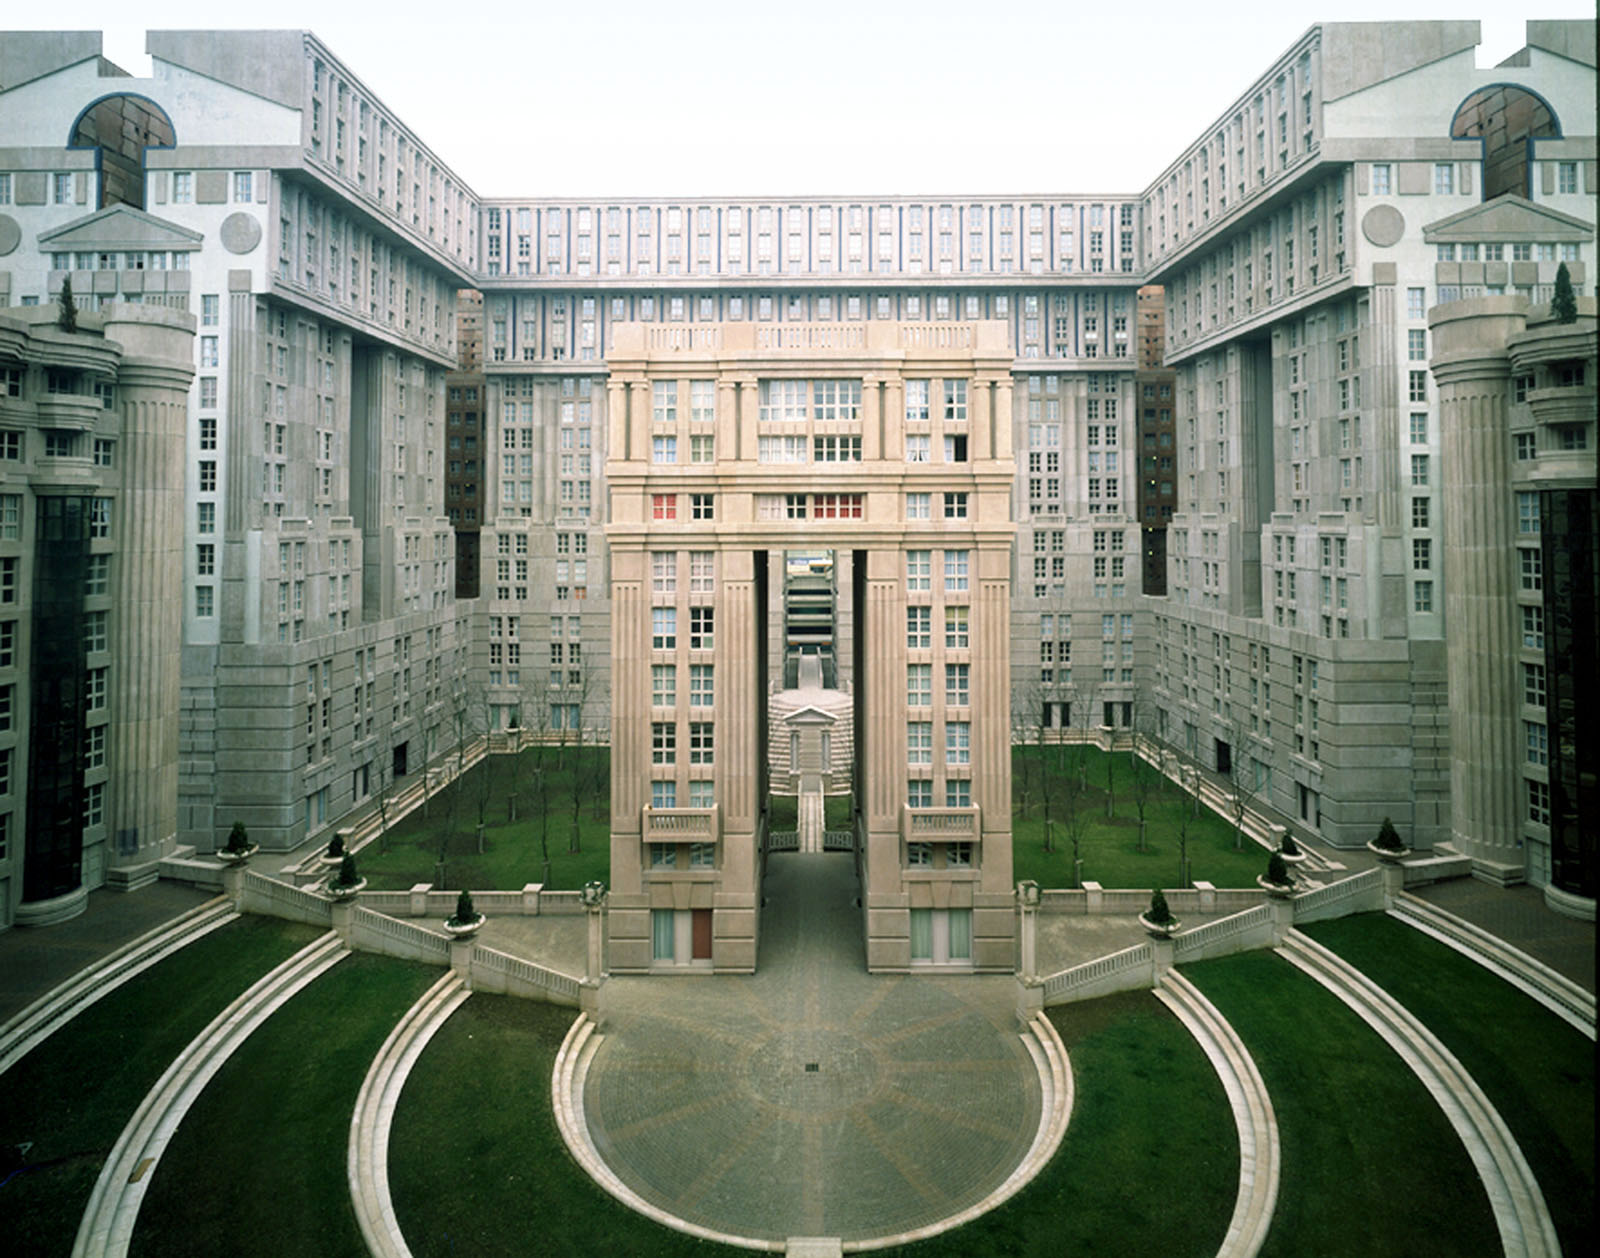 Capitol of Hunger Games - Fictional movie locations